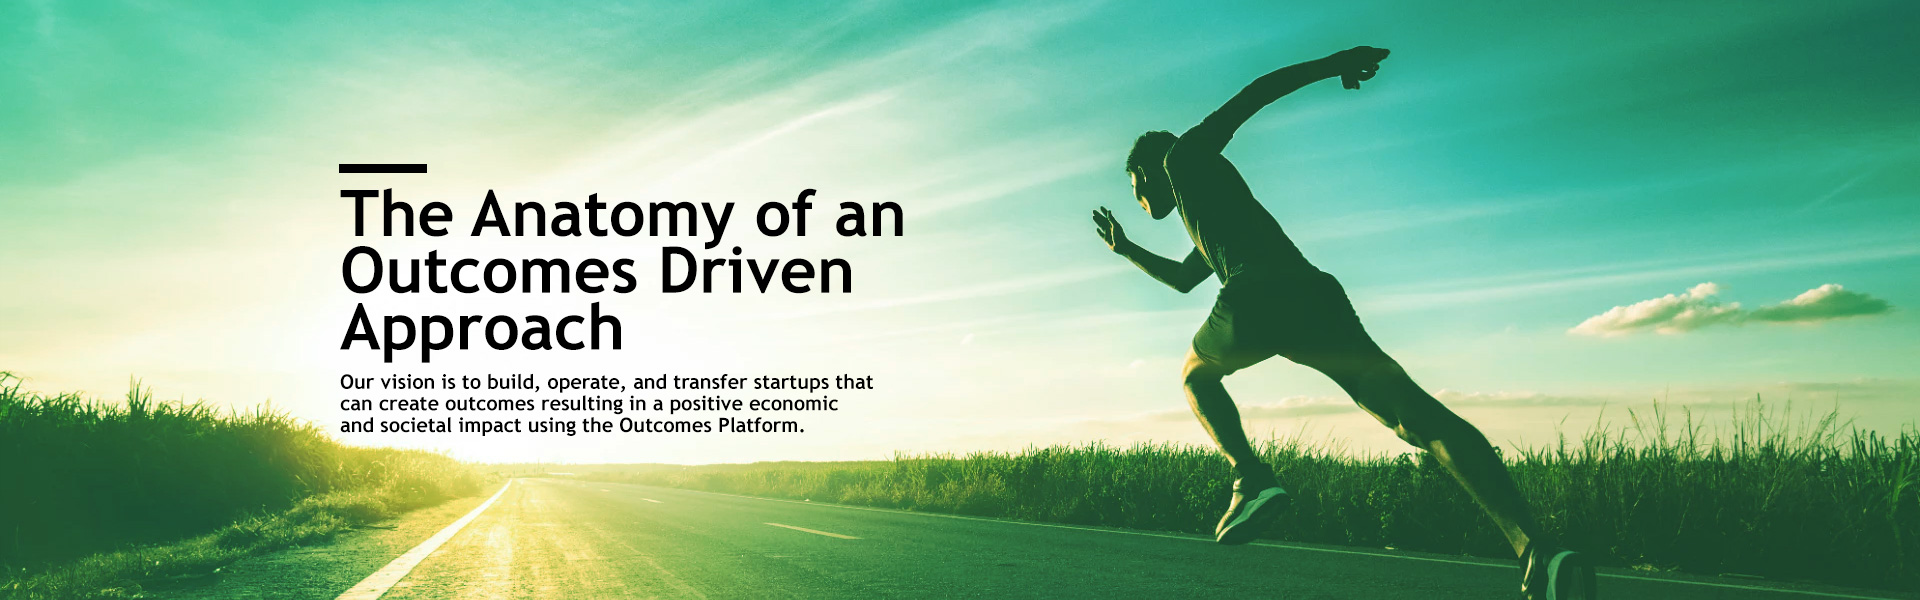 DX Partners Our vision is to build, operate, and transfer startups that can create outcomes resulting in a positive economic and societal impact using the Outcomes Platform.